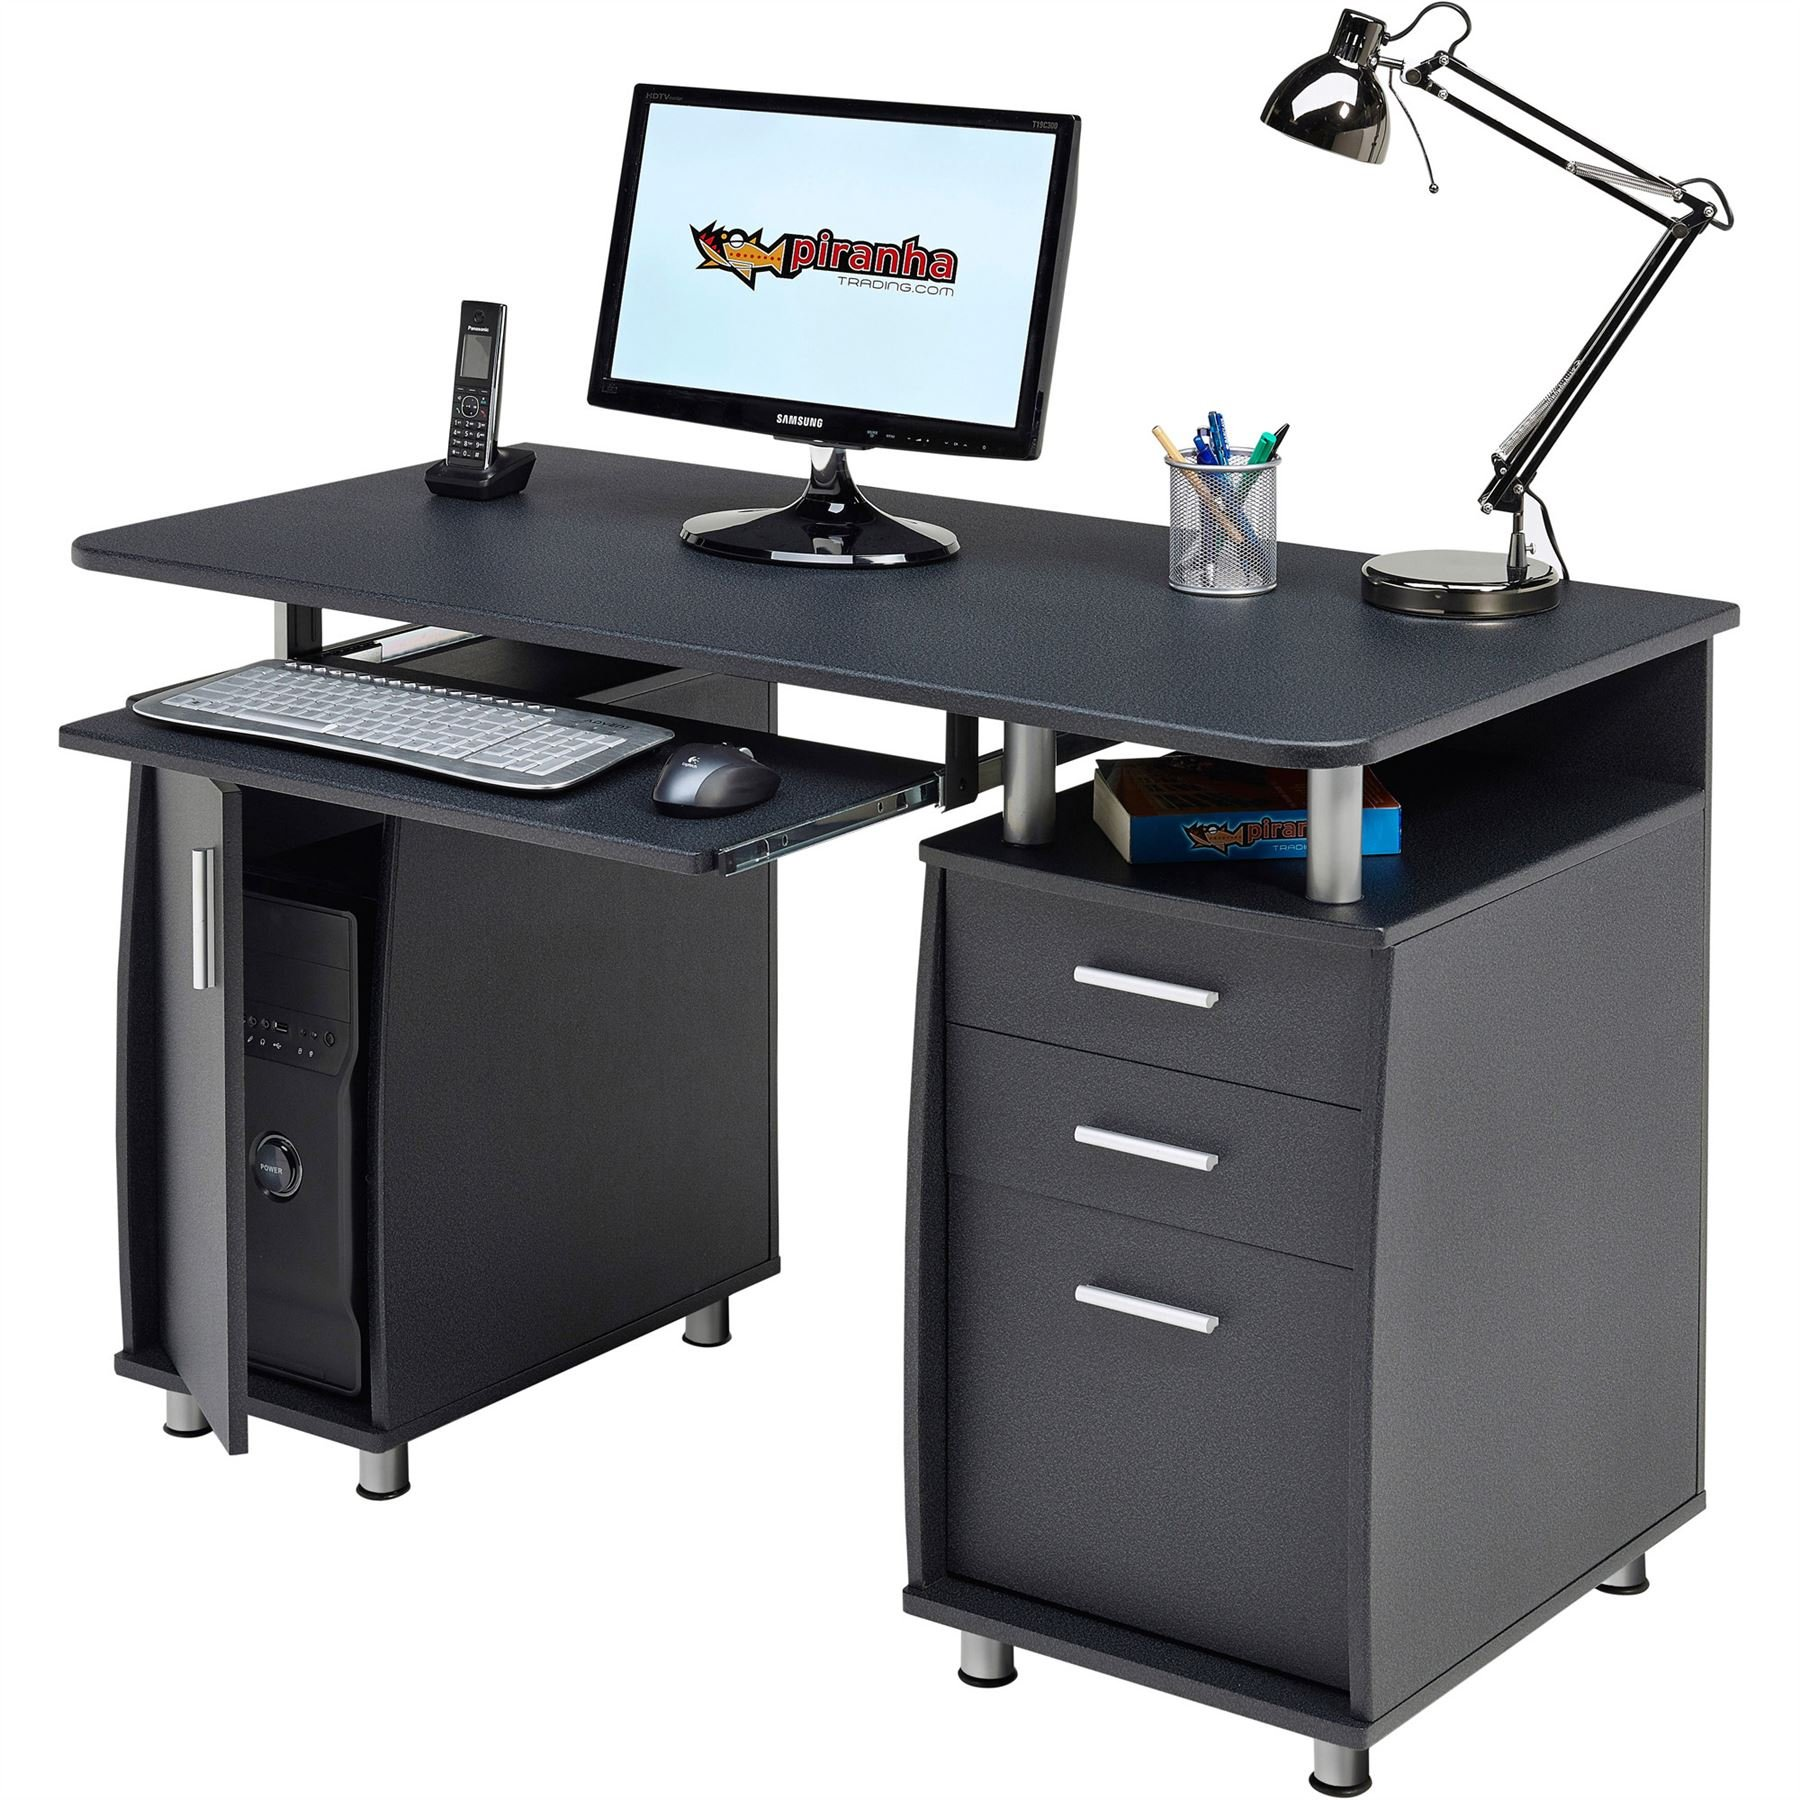 Compact Computer Desk Trolly with Keyboard Shelf Home Office in Graphite Black Piranha Furniture Minnow PC 11g